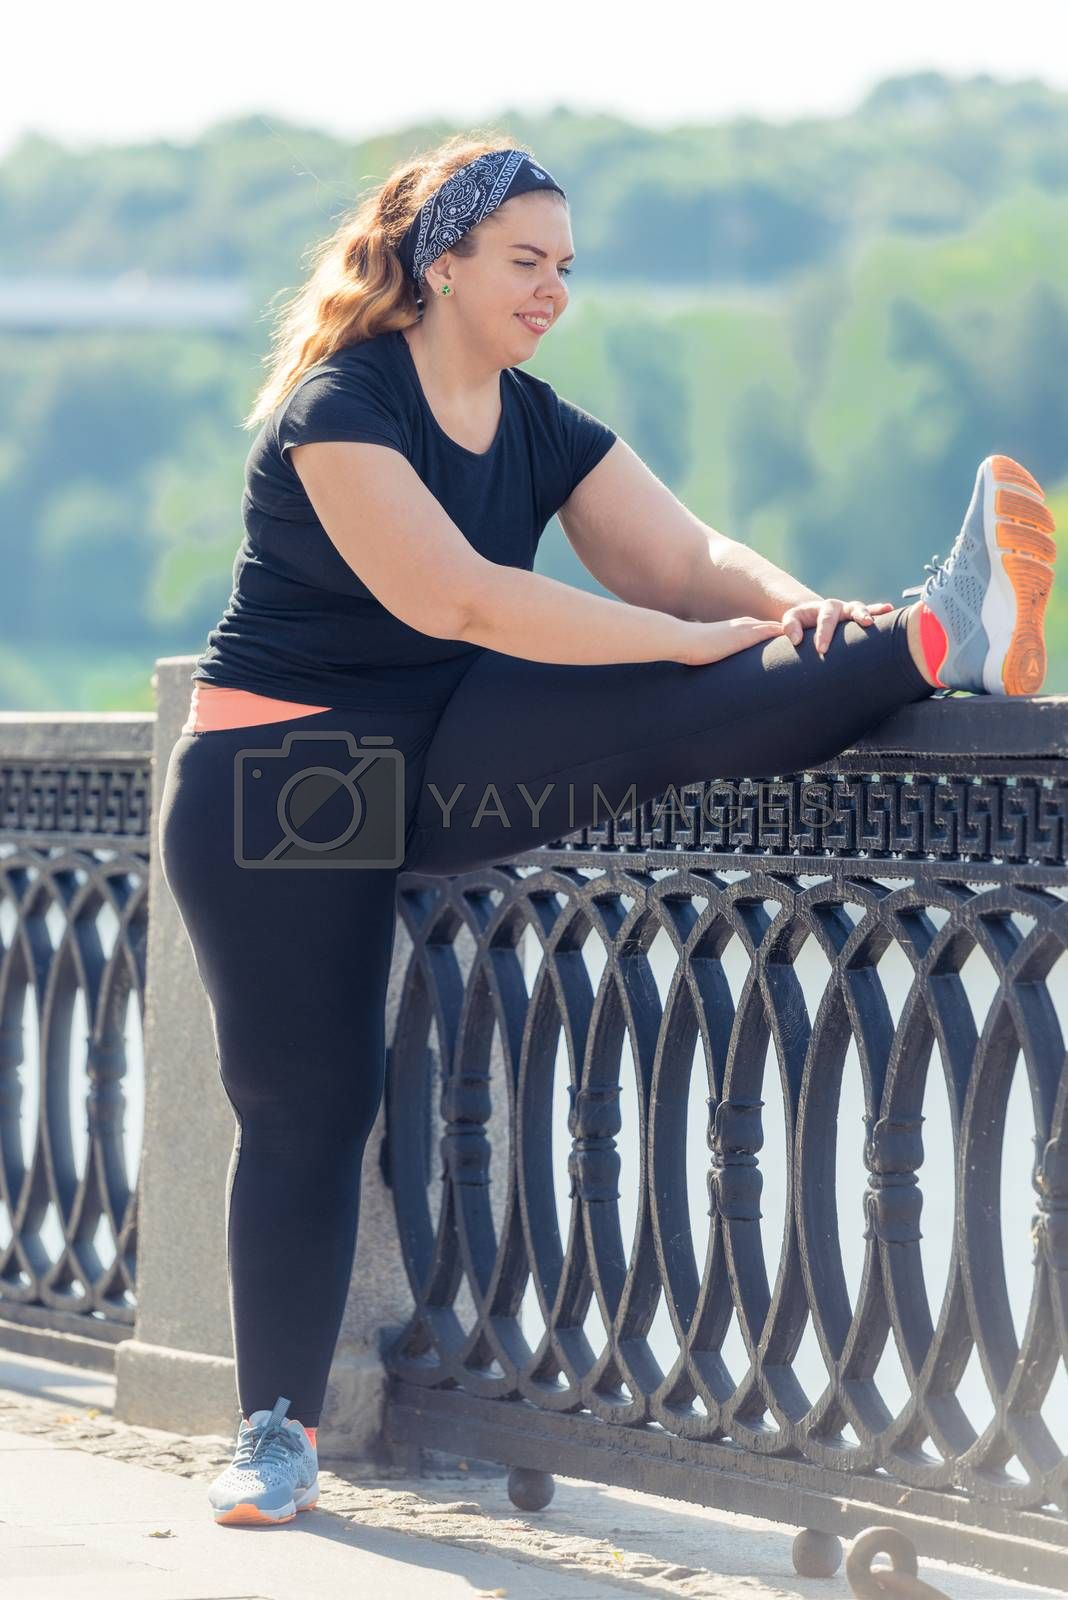 fat woman performs exercises on the embankment in the city park  by Labunskiy K.